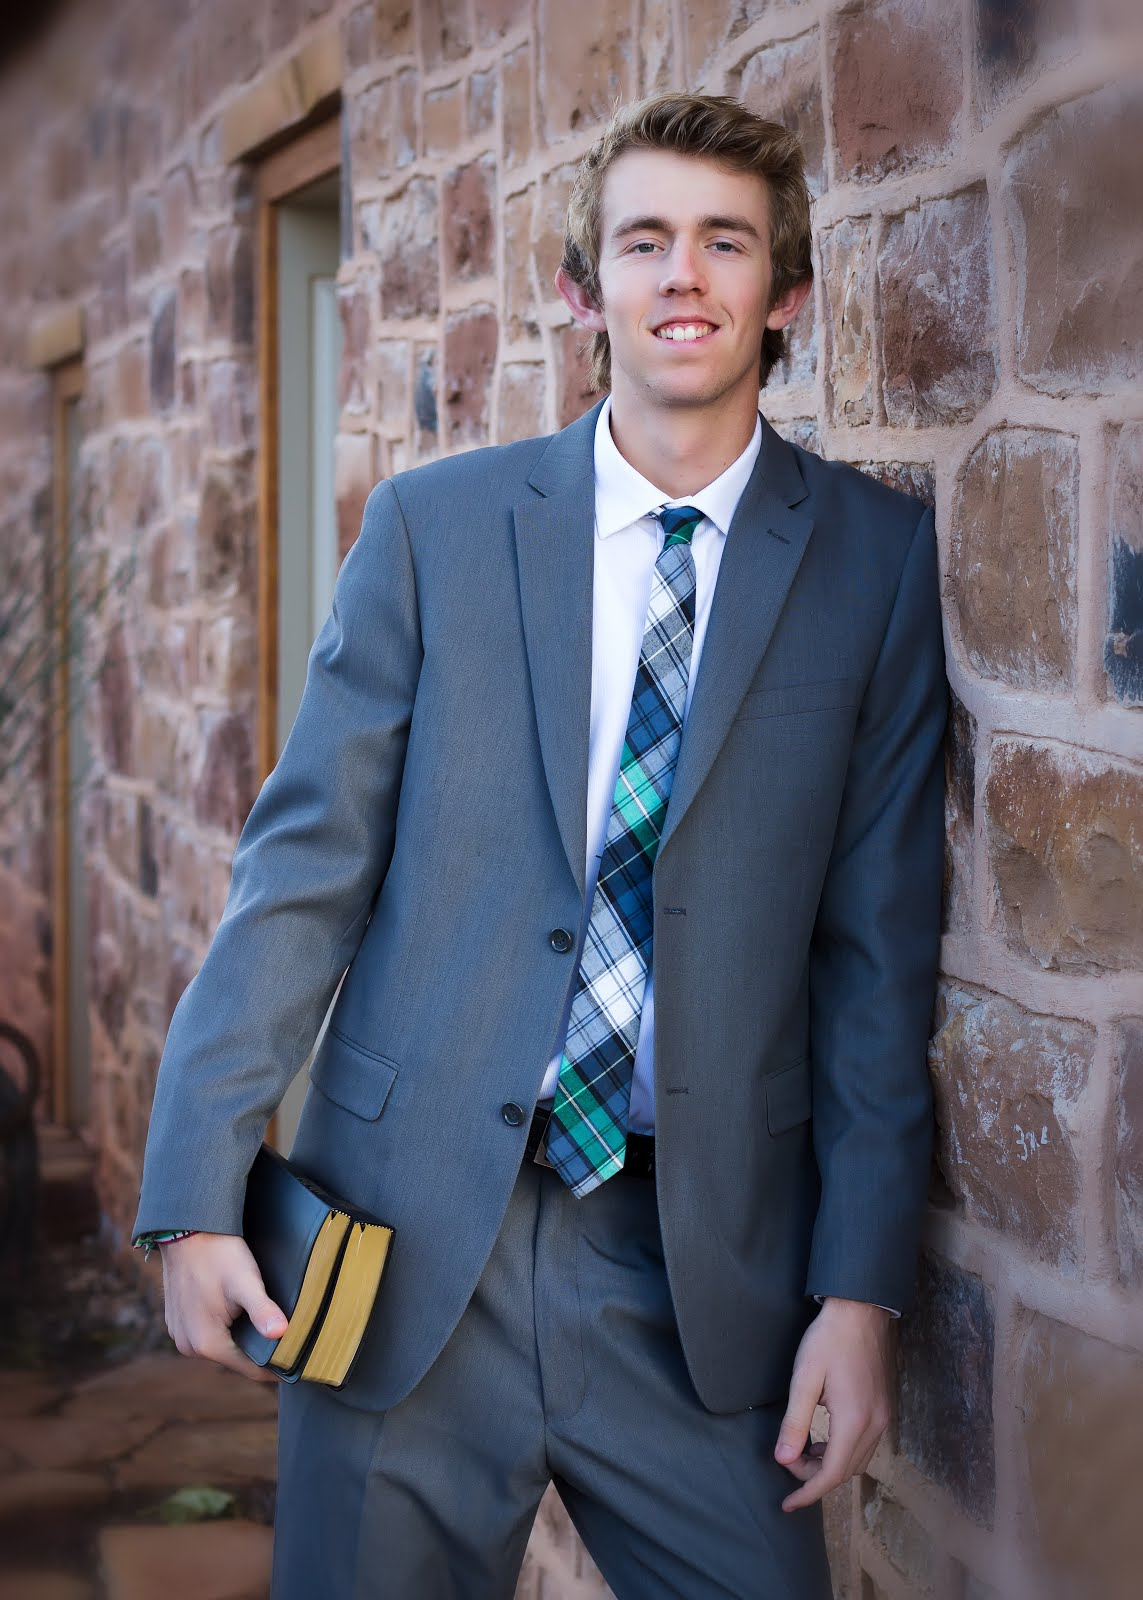 Elder Imlay